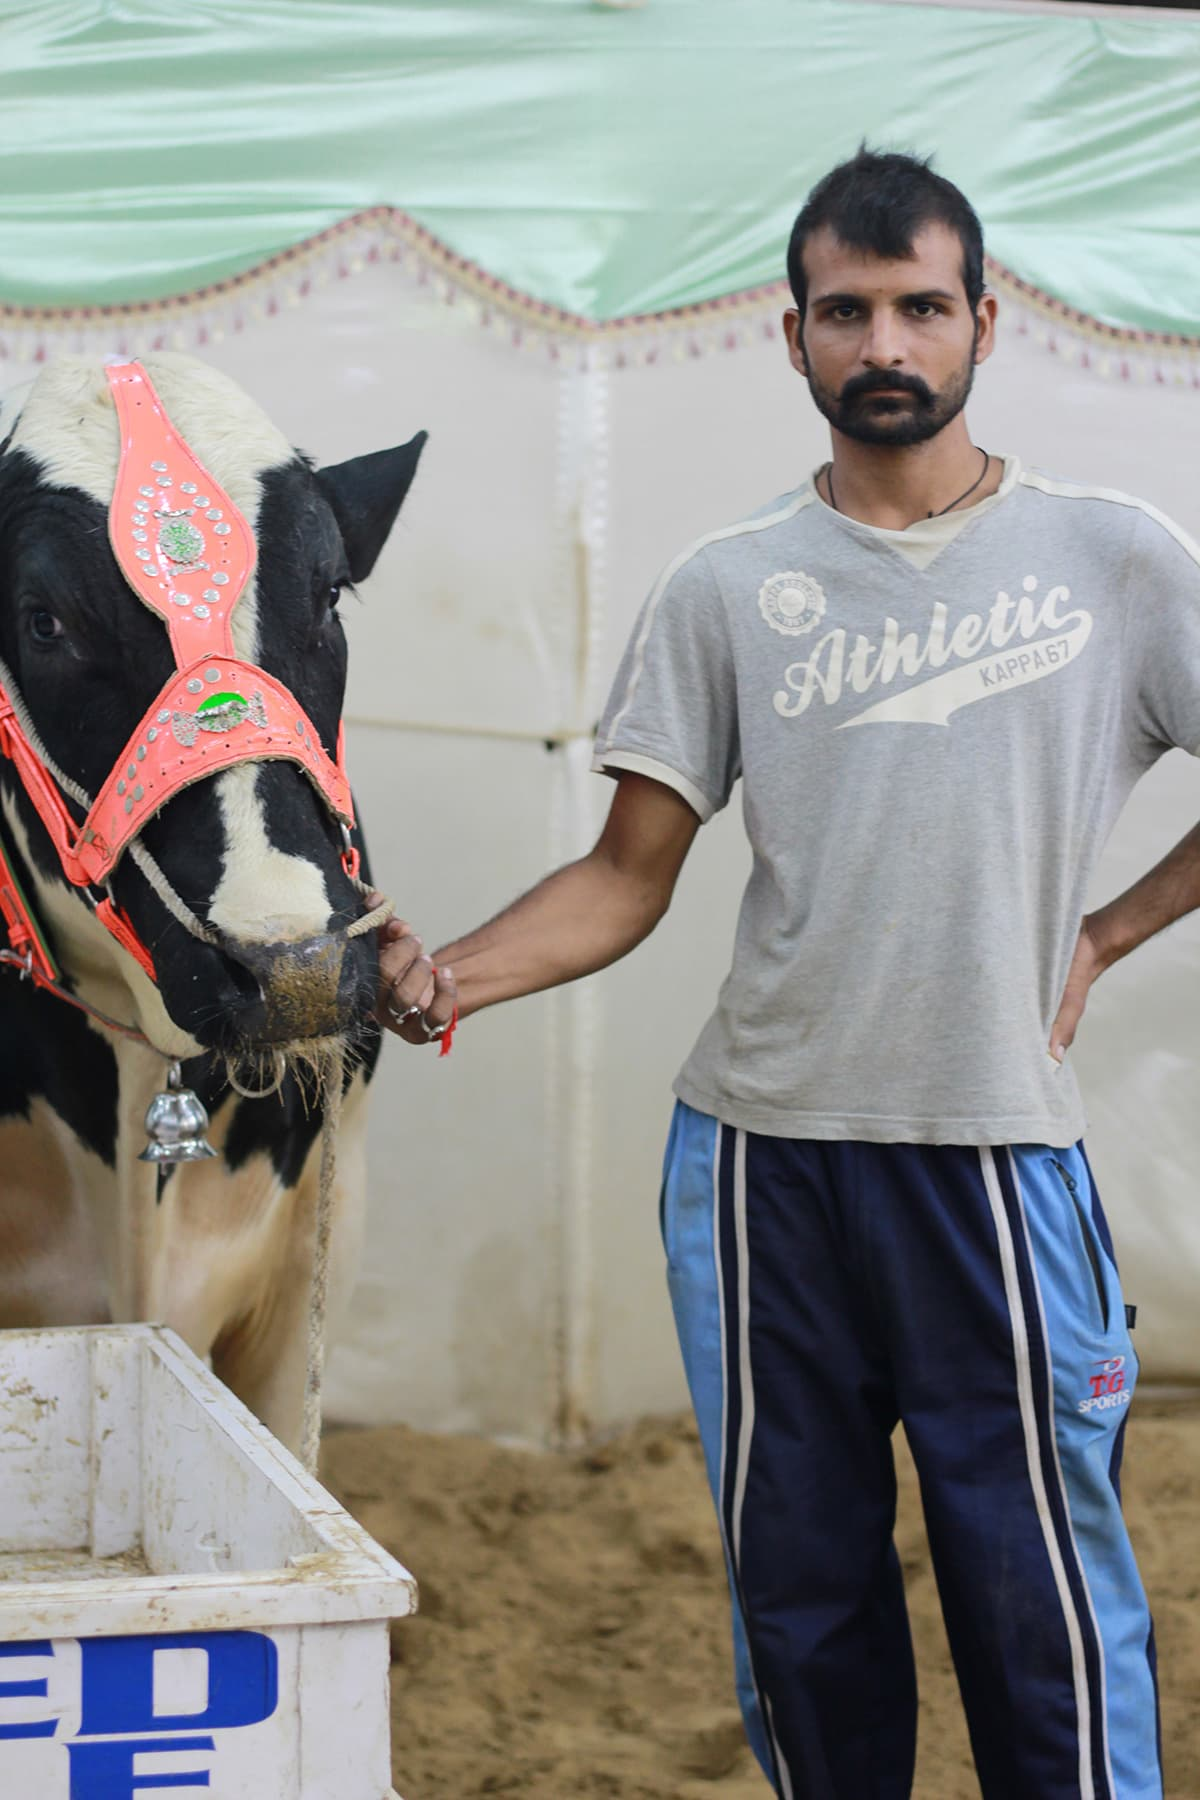 Amir poses with his cow. —Yumna Rafi